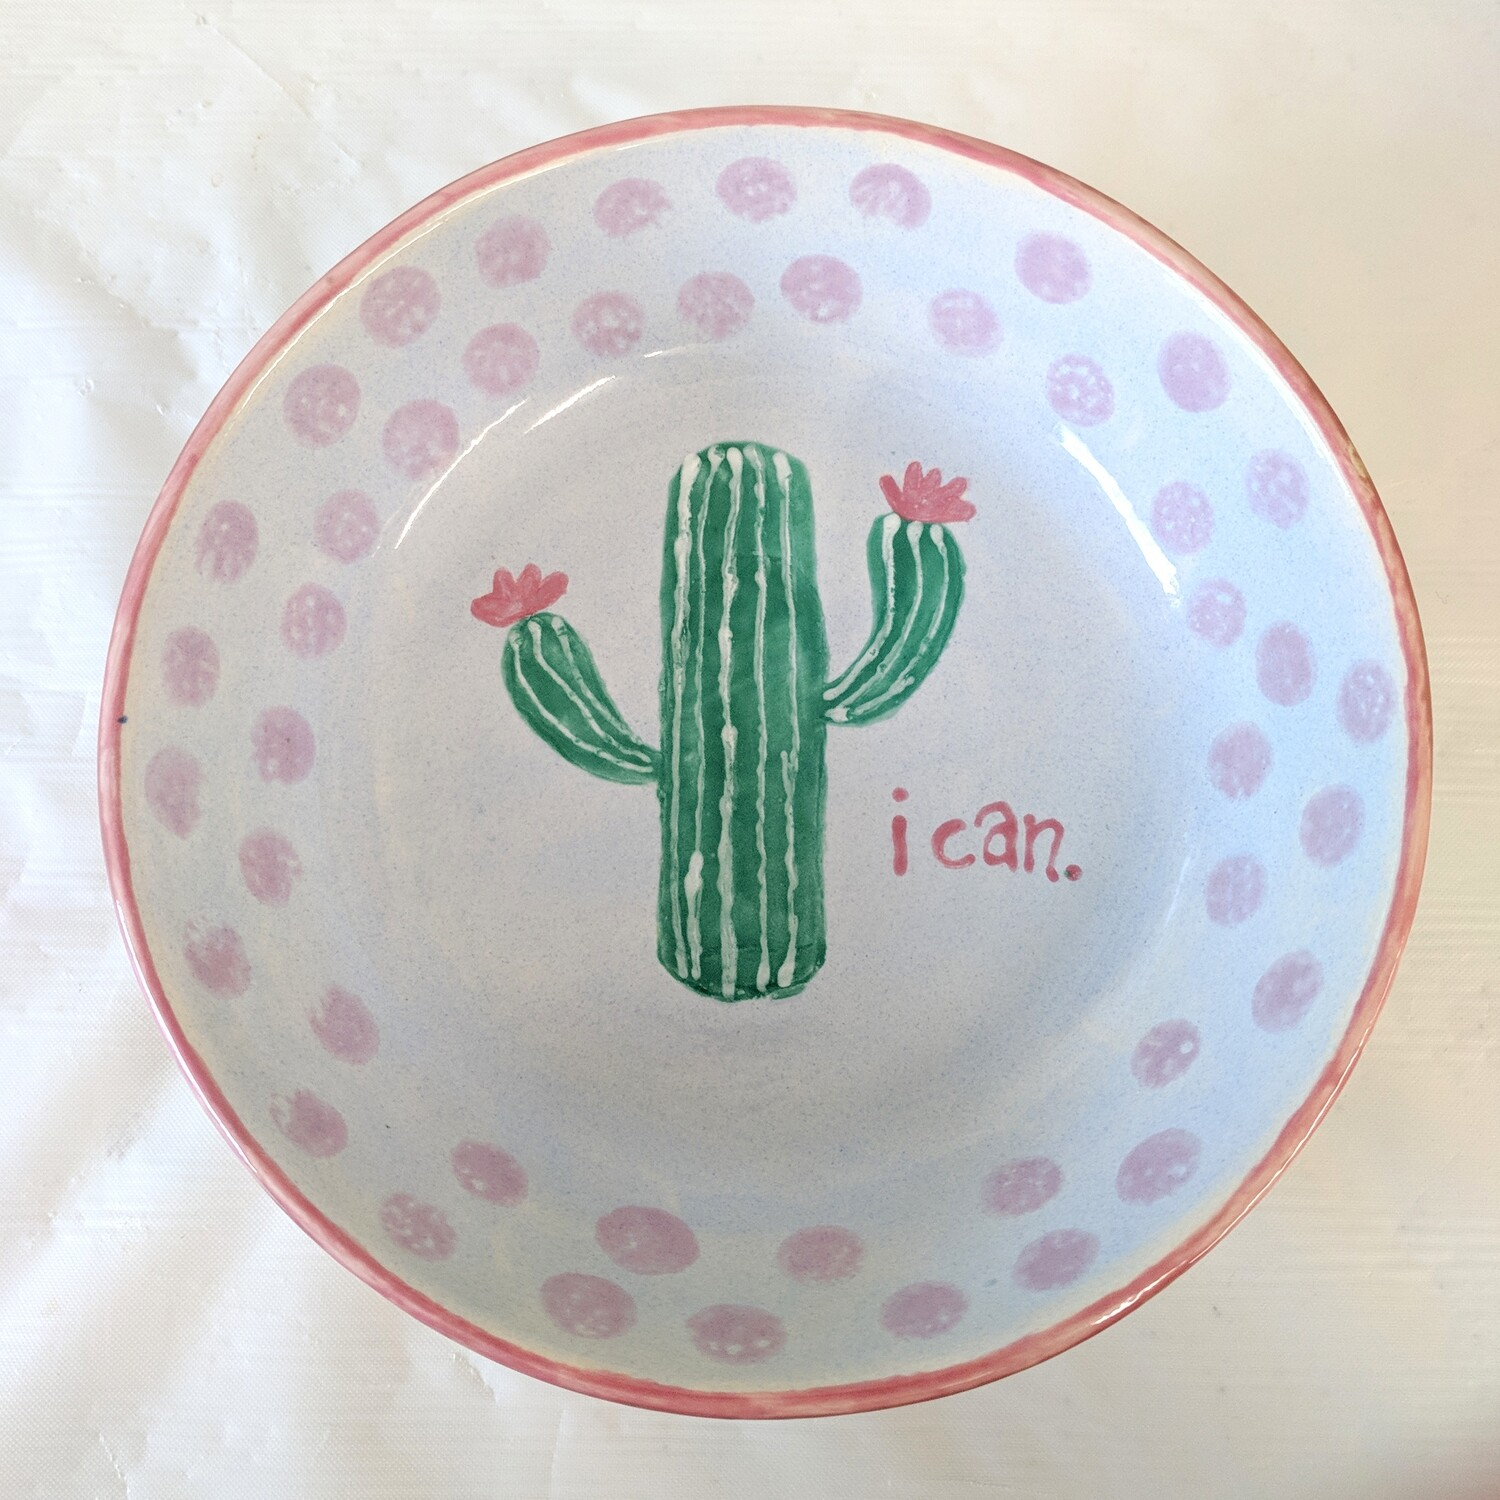 Cactus Pattern In Soup Bowl Class for 3+